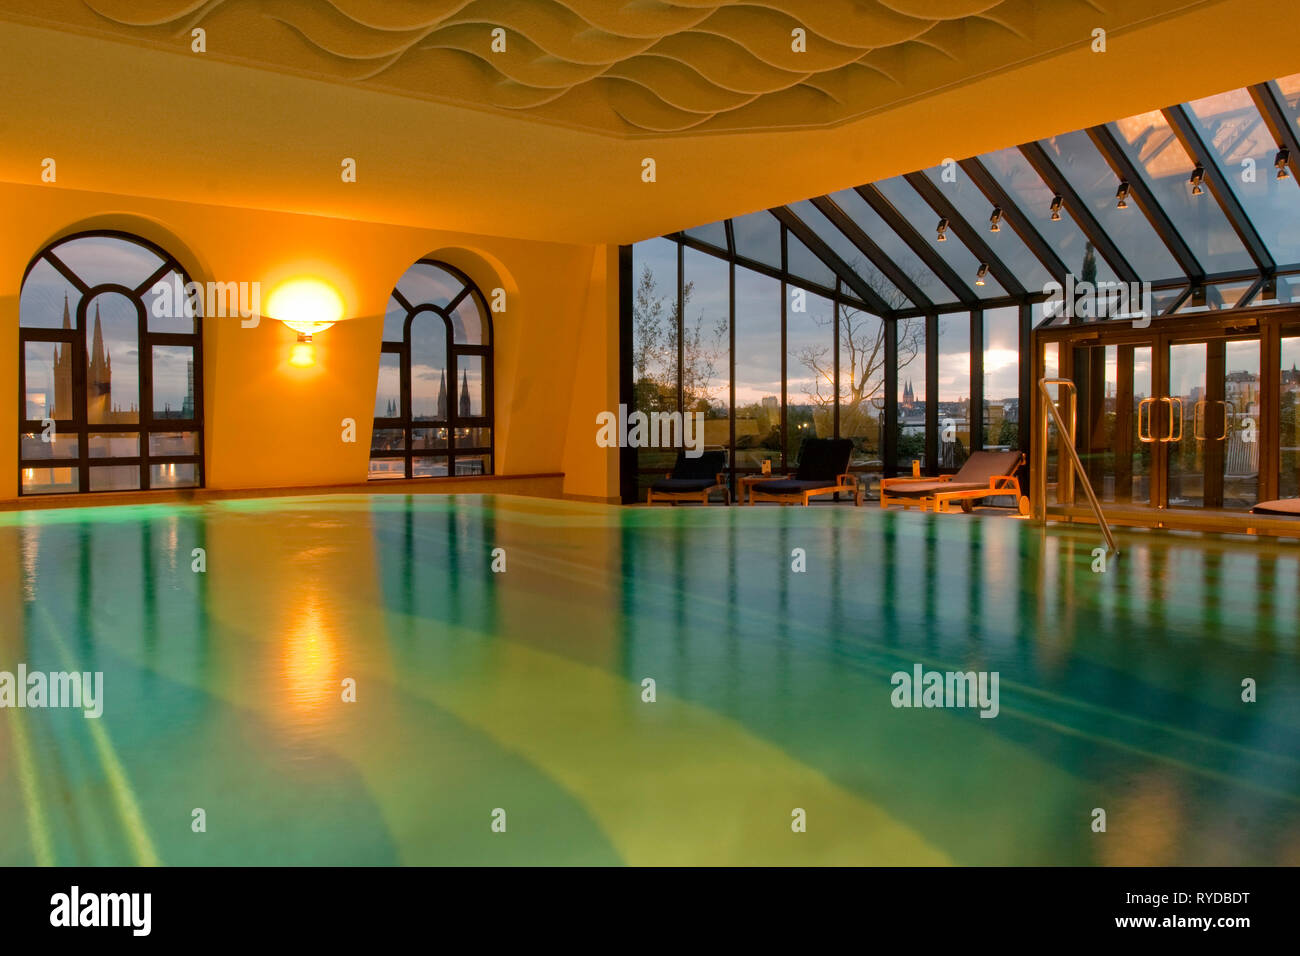 Wellness In Wiesbaden Hotel Swimming Pool Germany High Resolution Stock Photography And Images - Alamy